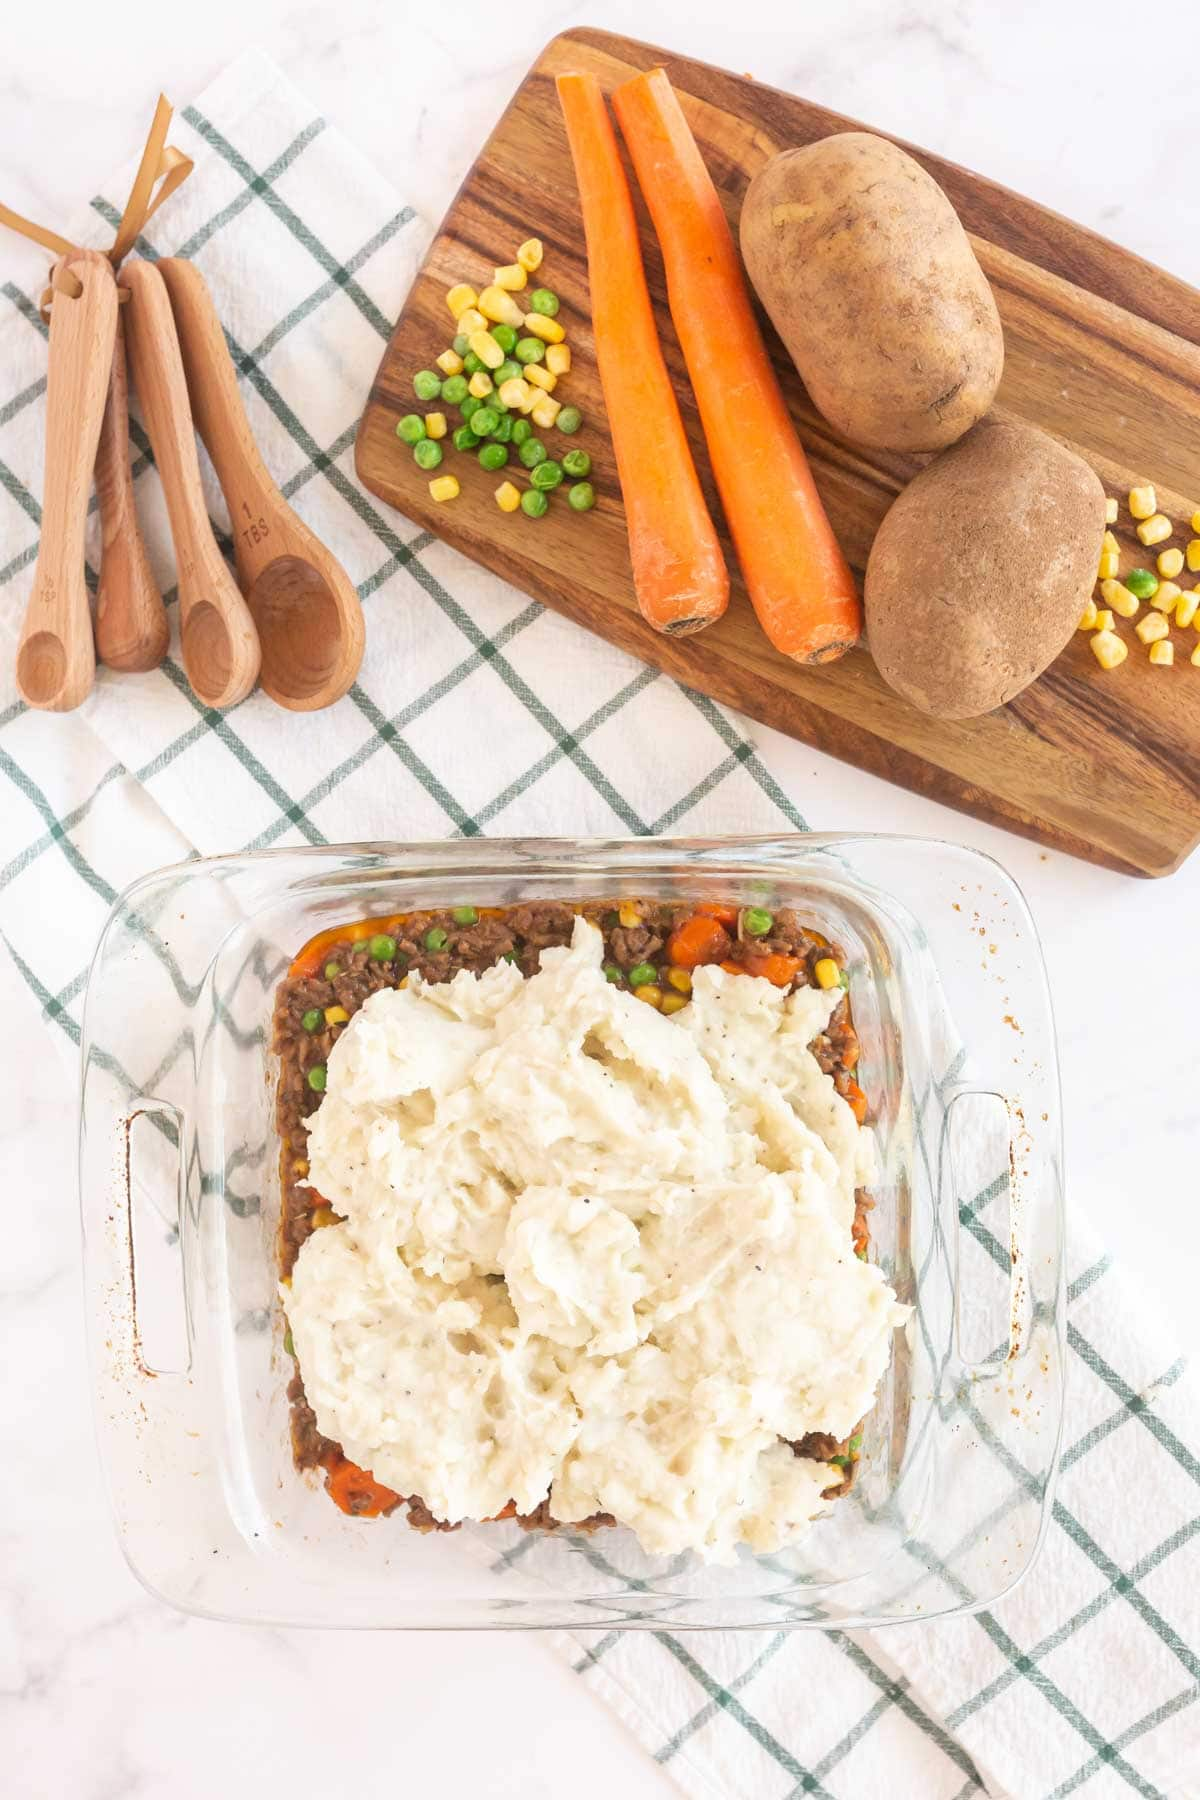 Mashed potatoes on top of shepherd's pie filling in a glass baking dish